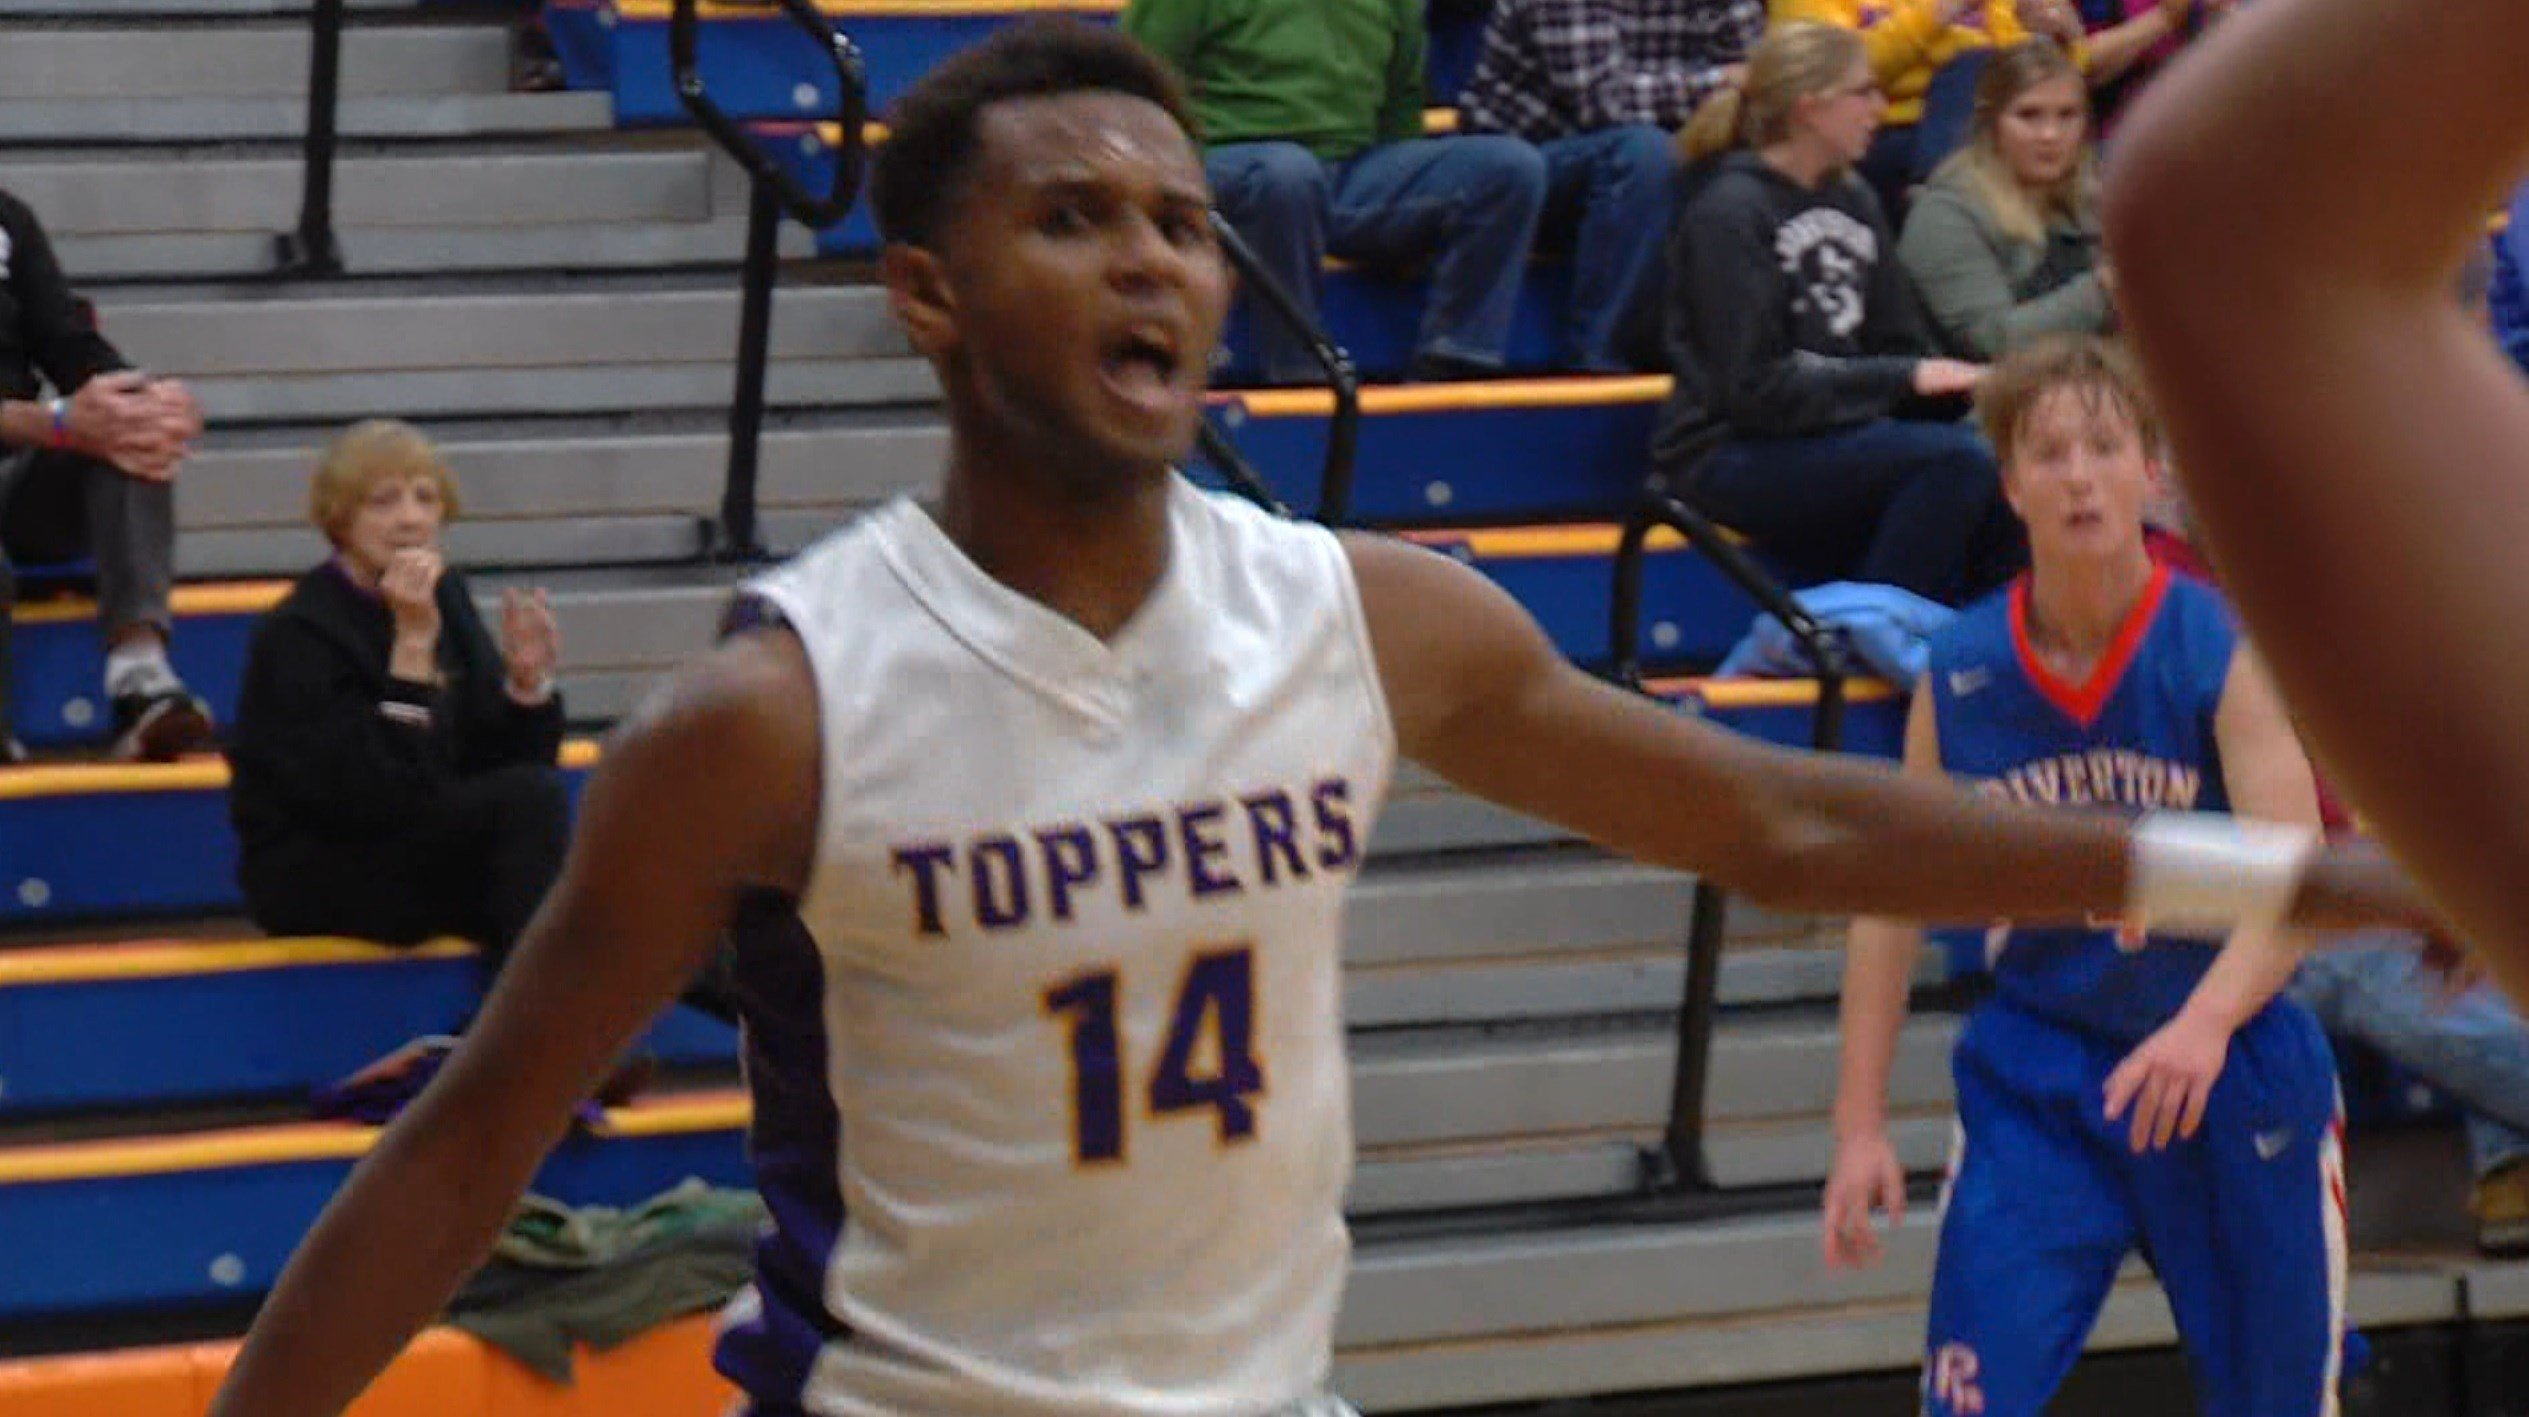 Mt. Pulaski guard Gezus Oliver helped the Toppers win the Tomahawk Conference title in 2017-18.